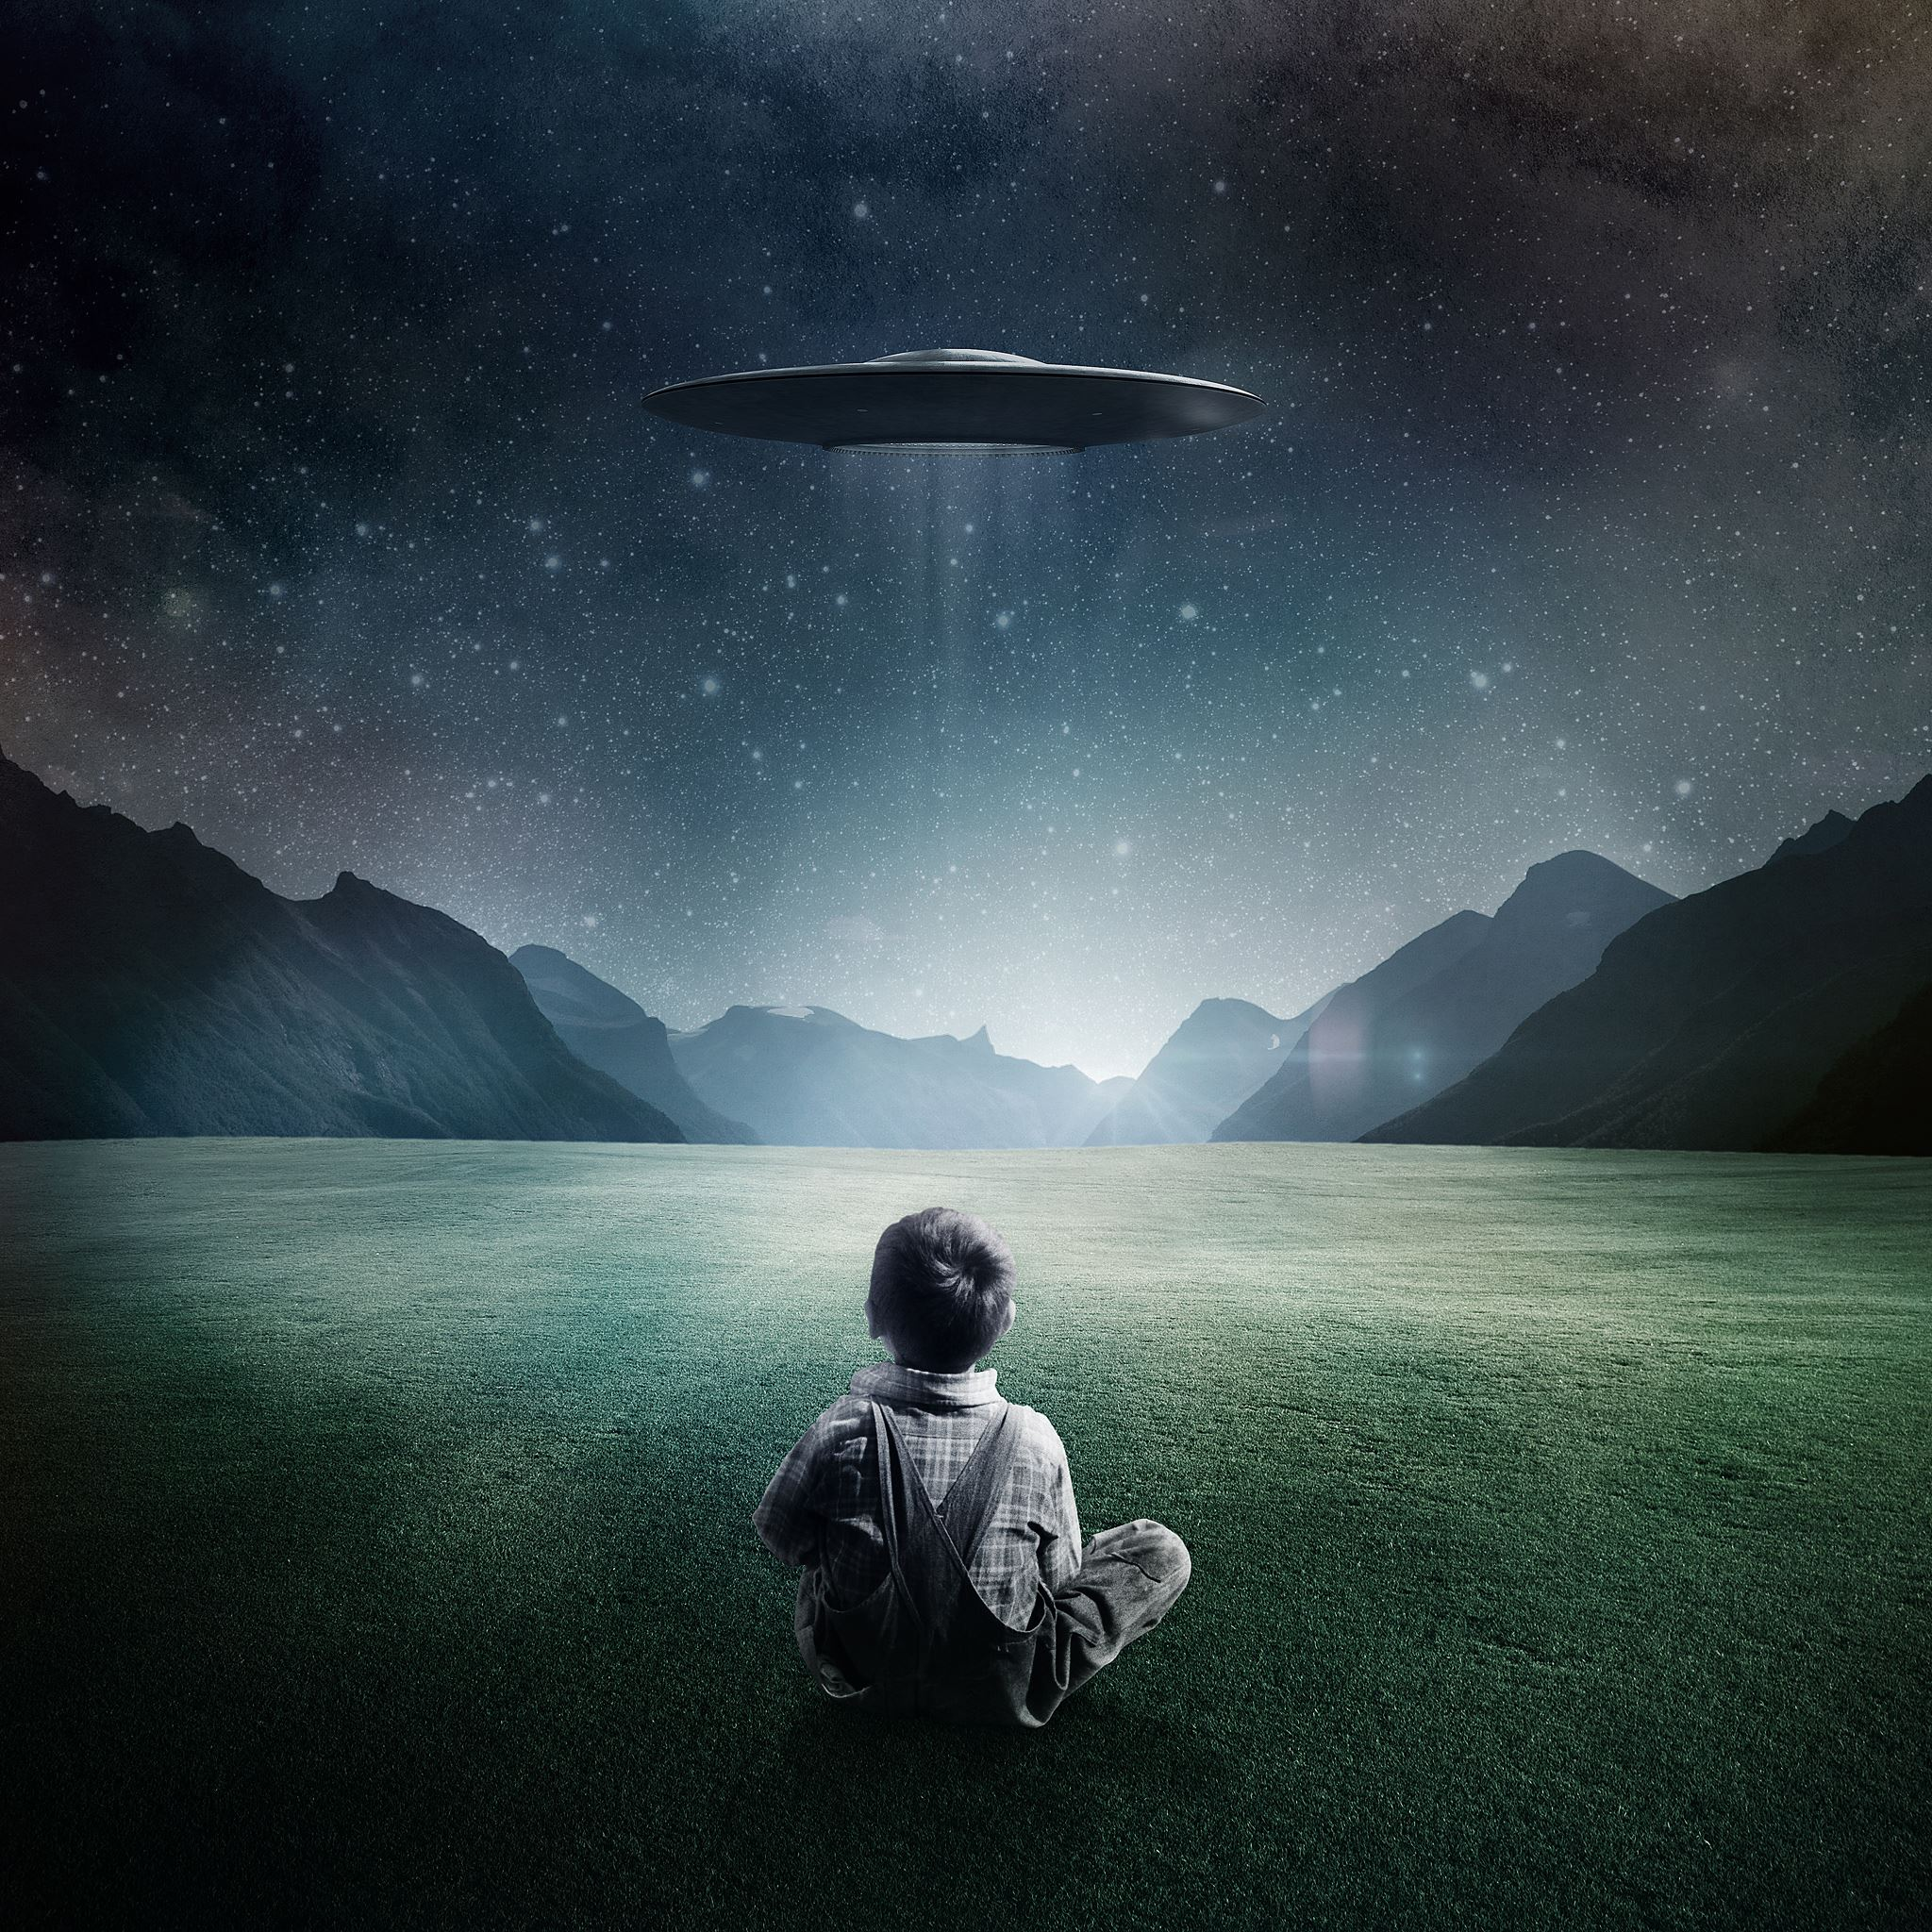 Boy and UFO iPad Air wallpaper